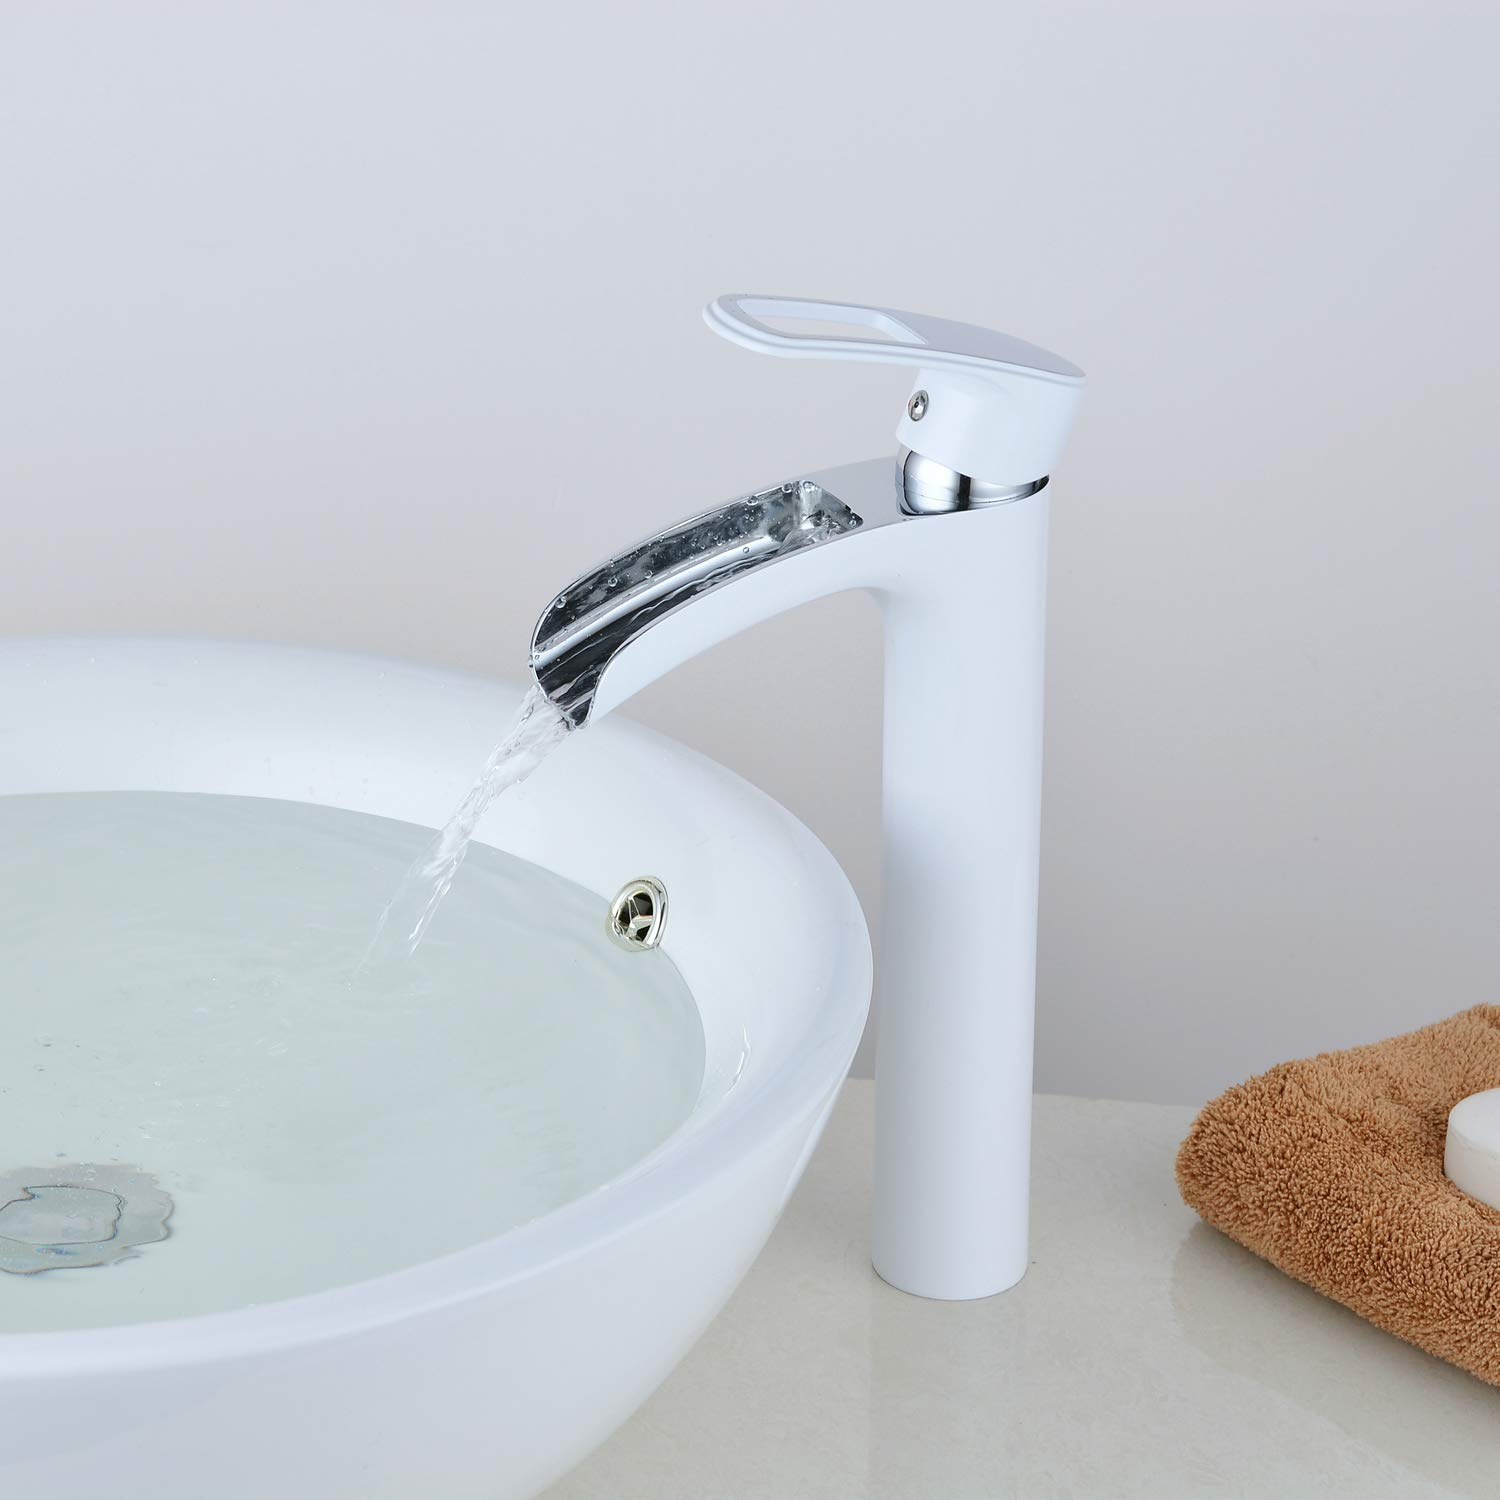 White Chrome Tall Basin Mixer Tap Waterfall Tall Bathroom Sink Taps Brass Chrome Finish Modern Single Handle Lever One Hole Mount Counter Top Tall Tap Lavatory Leekayer, LK6683H